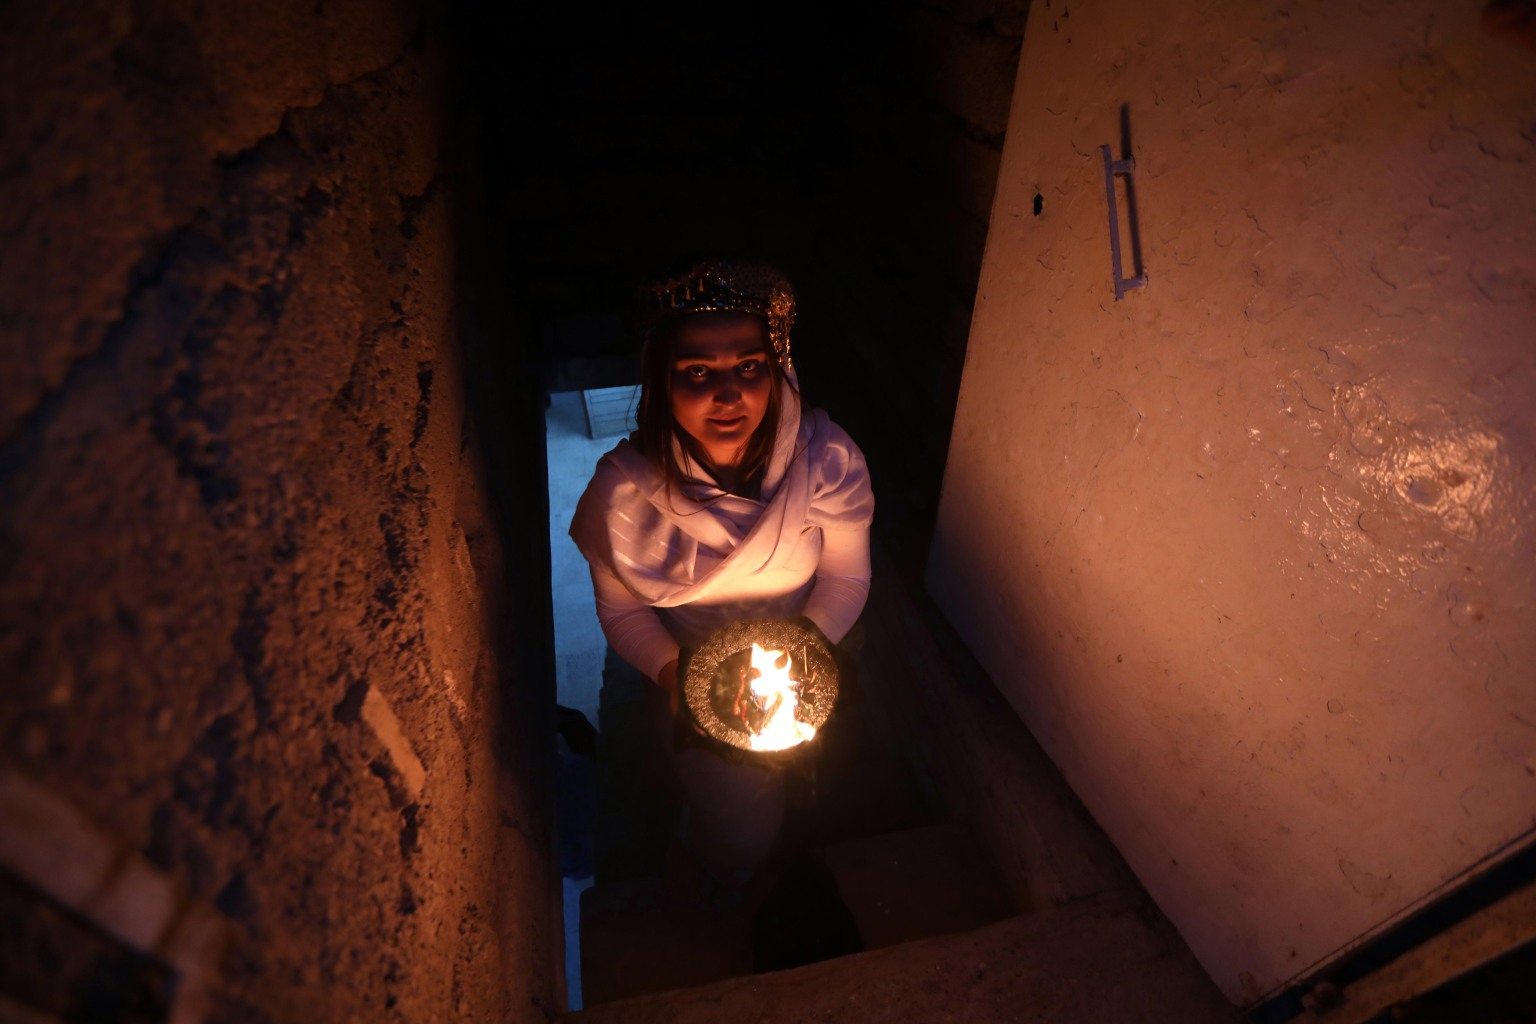 An Iraqi Yazidi carries a candle inside Lalish temple near Dohuk, 260 miles northwest of Baghdad, during a ceremony to celebrate the Yazidi New Year on April 17. SAFIN HAMED/AFP/Getty Images